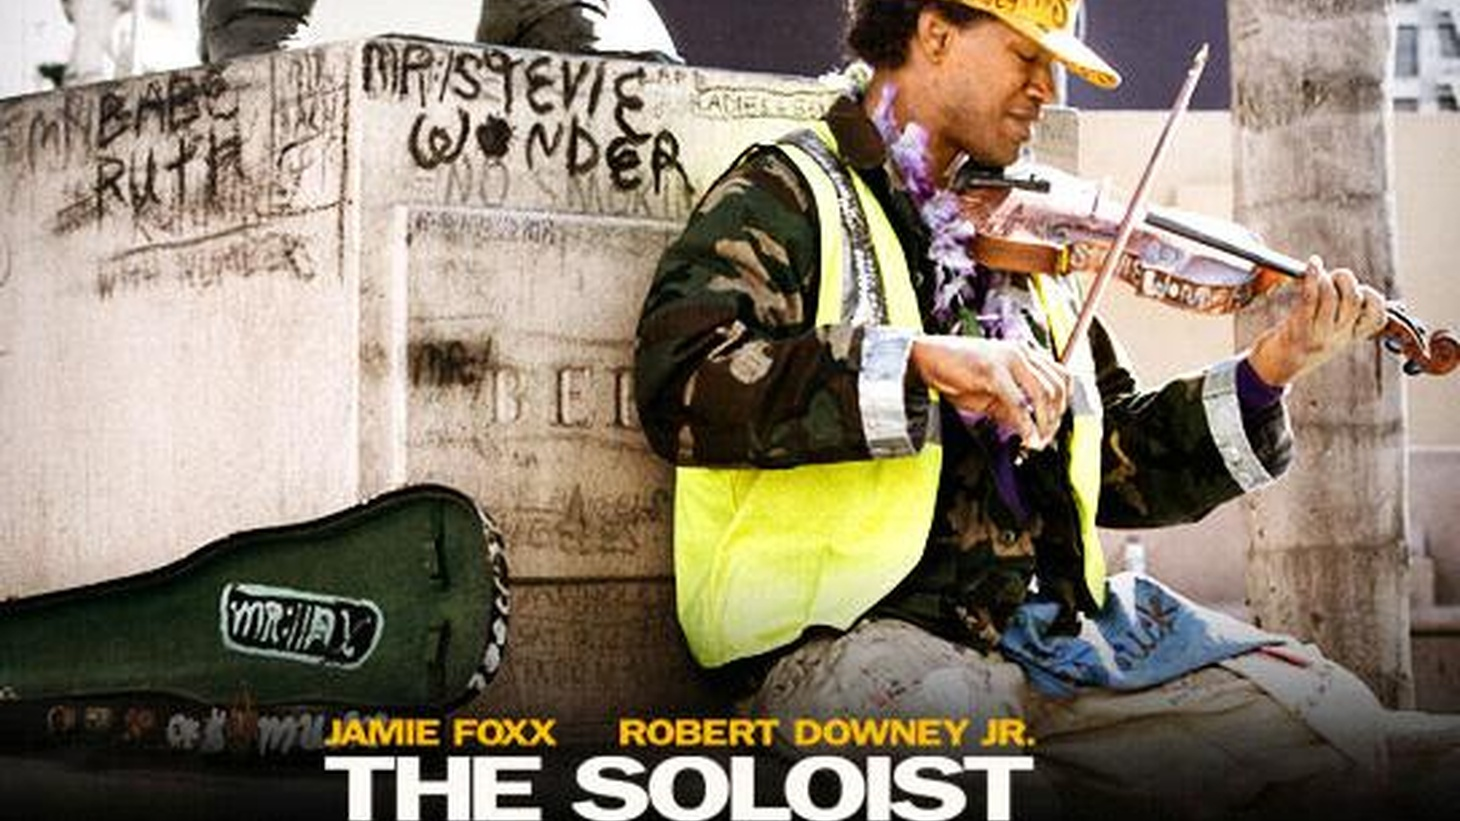 The Soloist is actually a duet on the theme of redemption. It's scored for two very different, though equally remarkable actors, and performed with uncanny bravura...